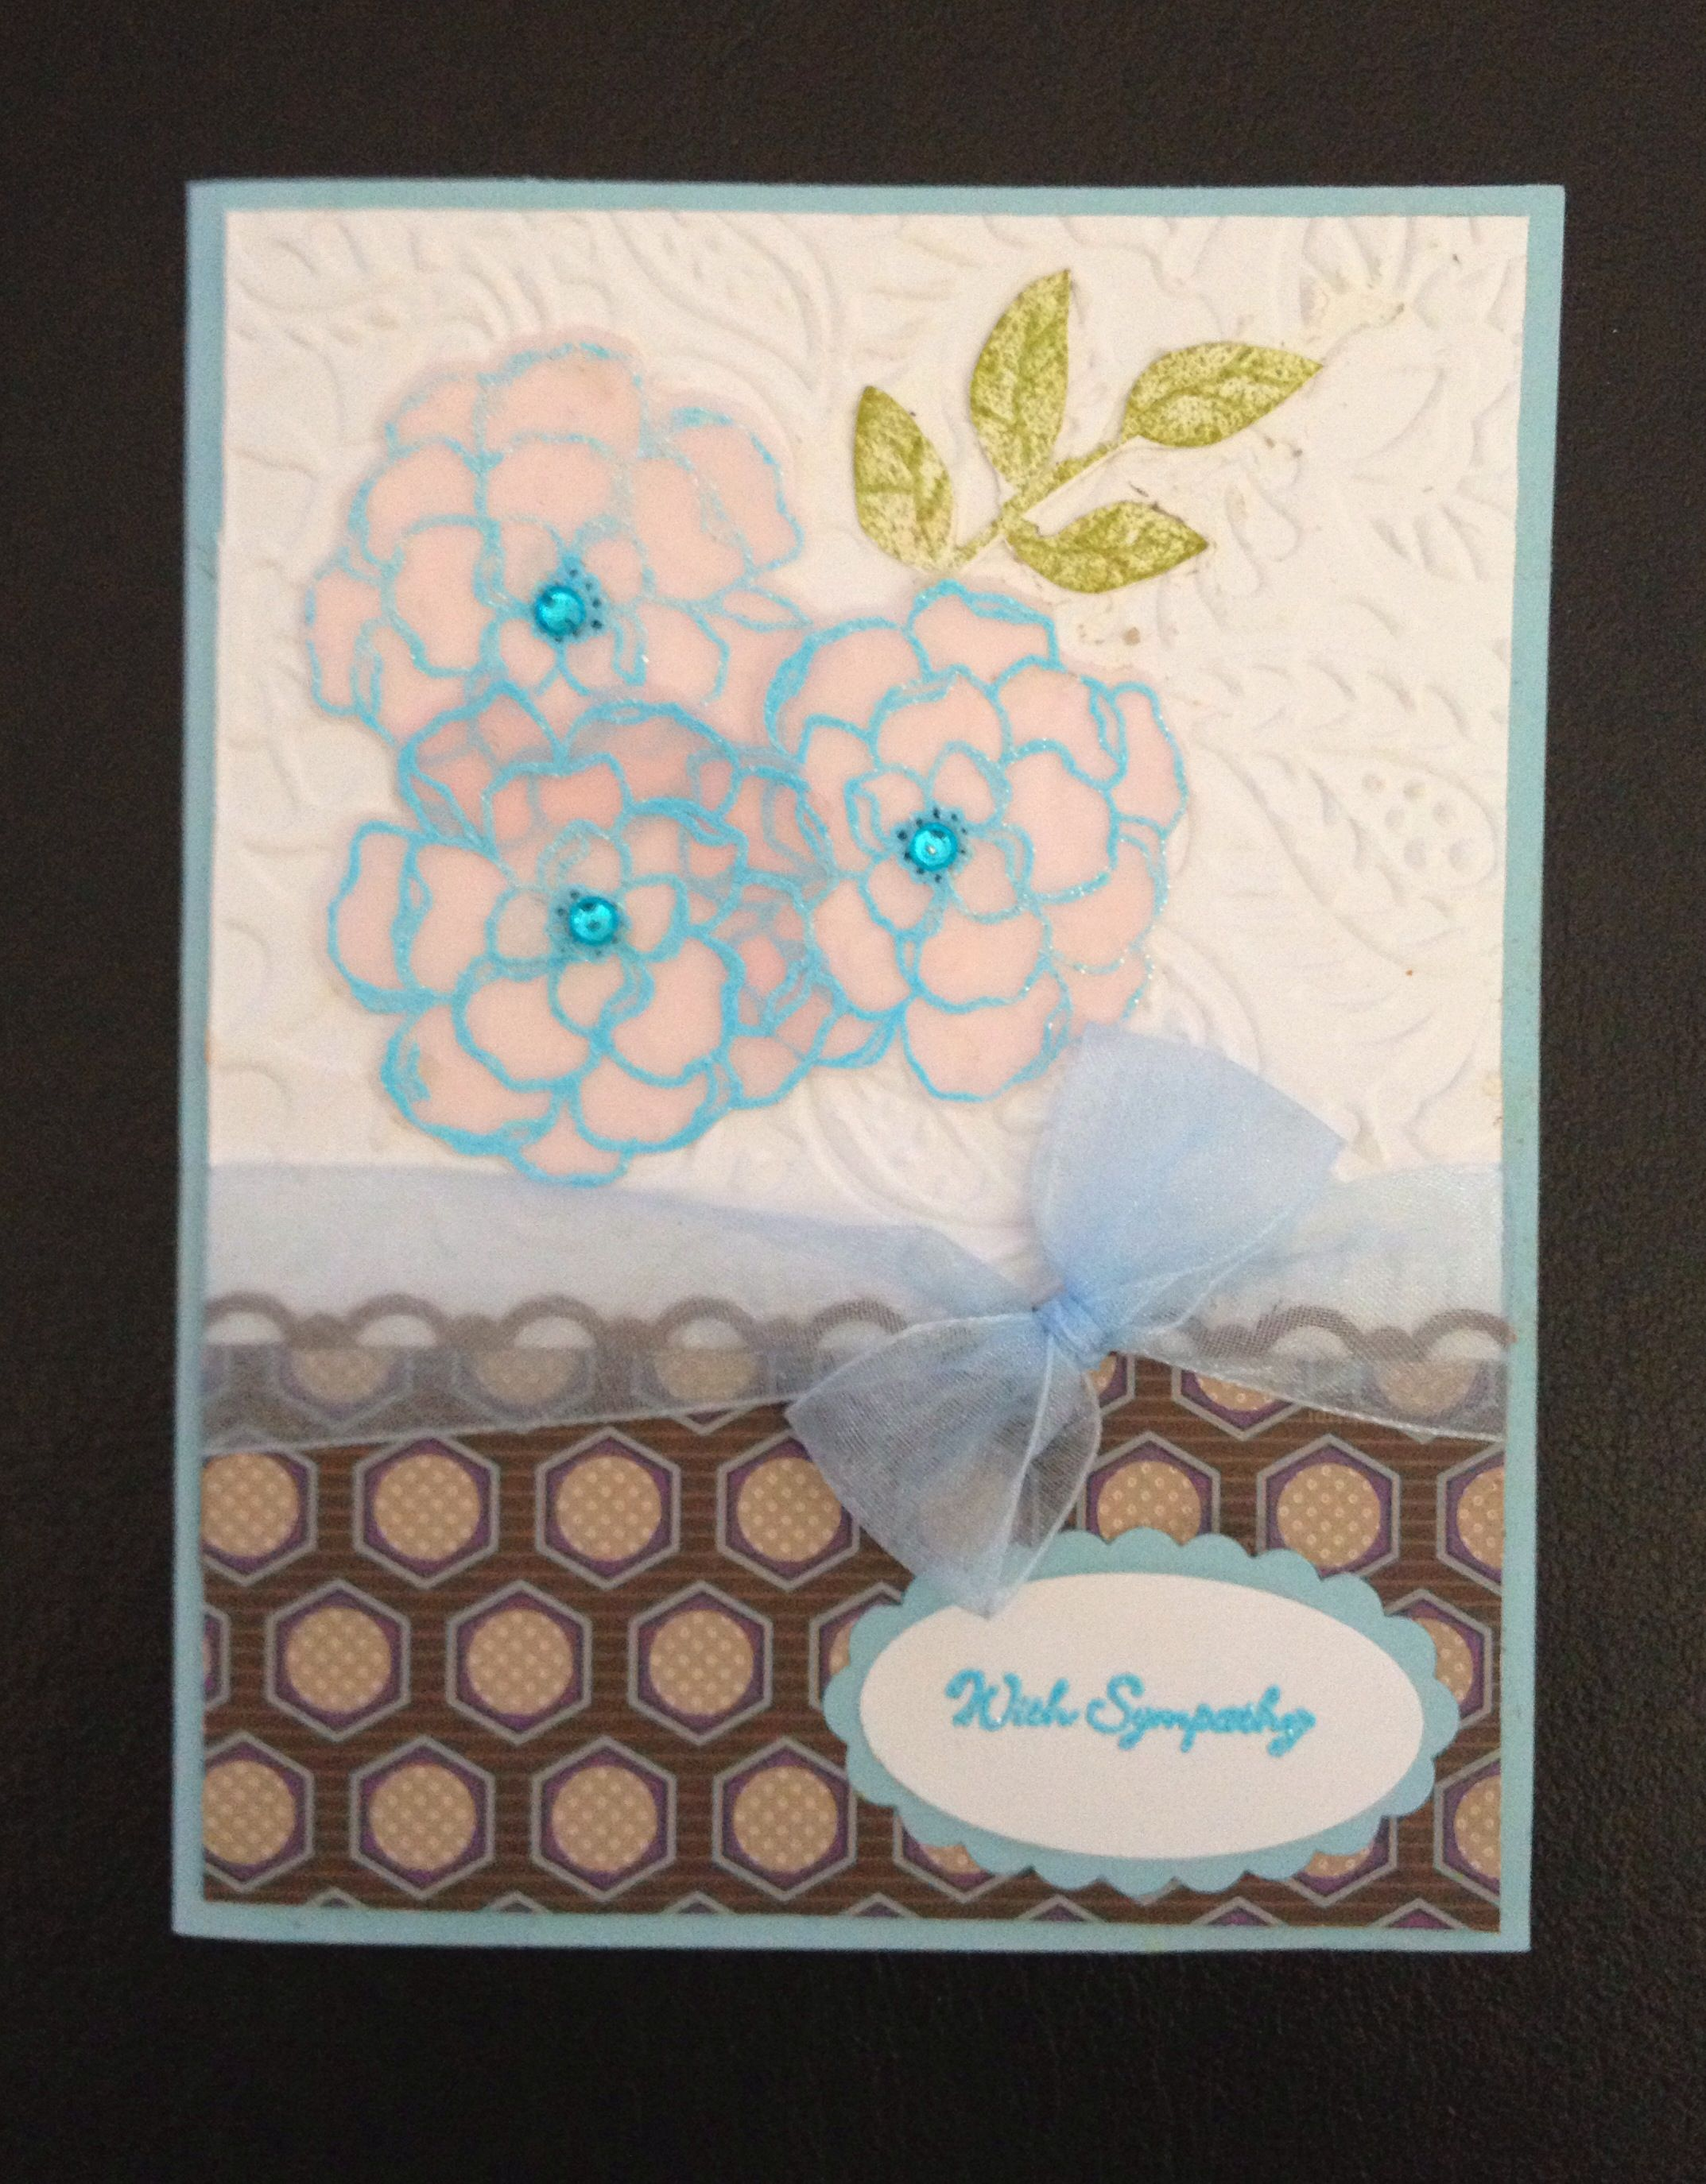 Sympathy card with flowers. Stampin up style.